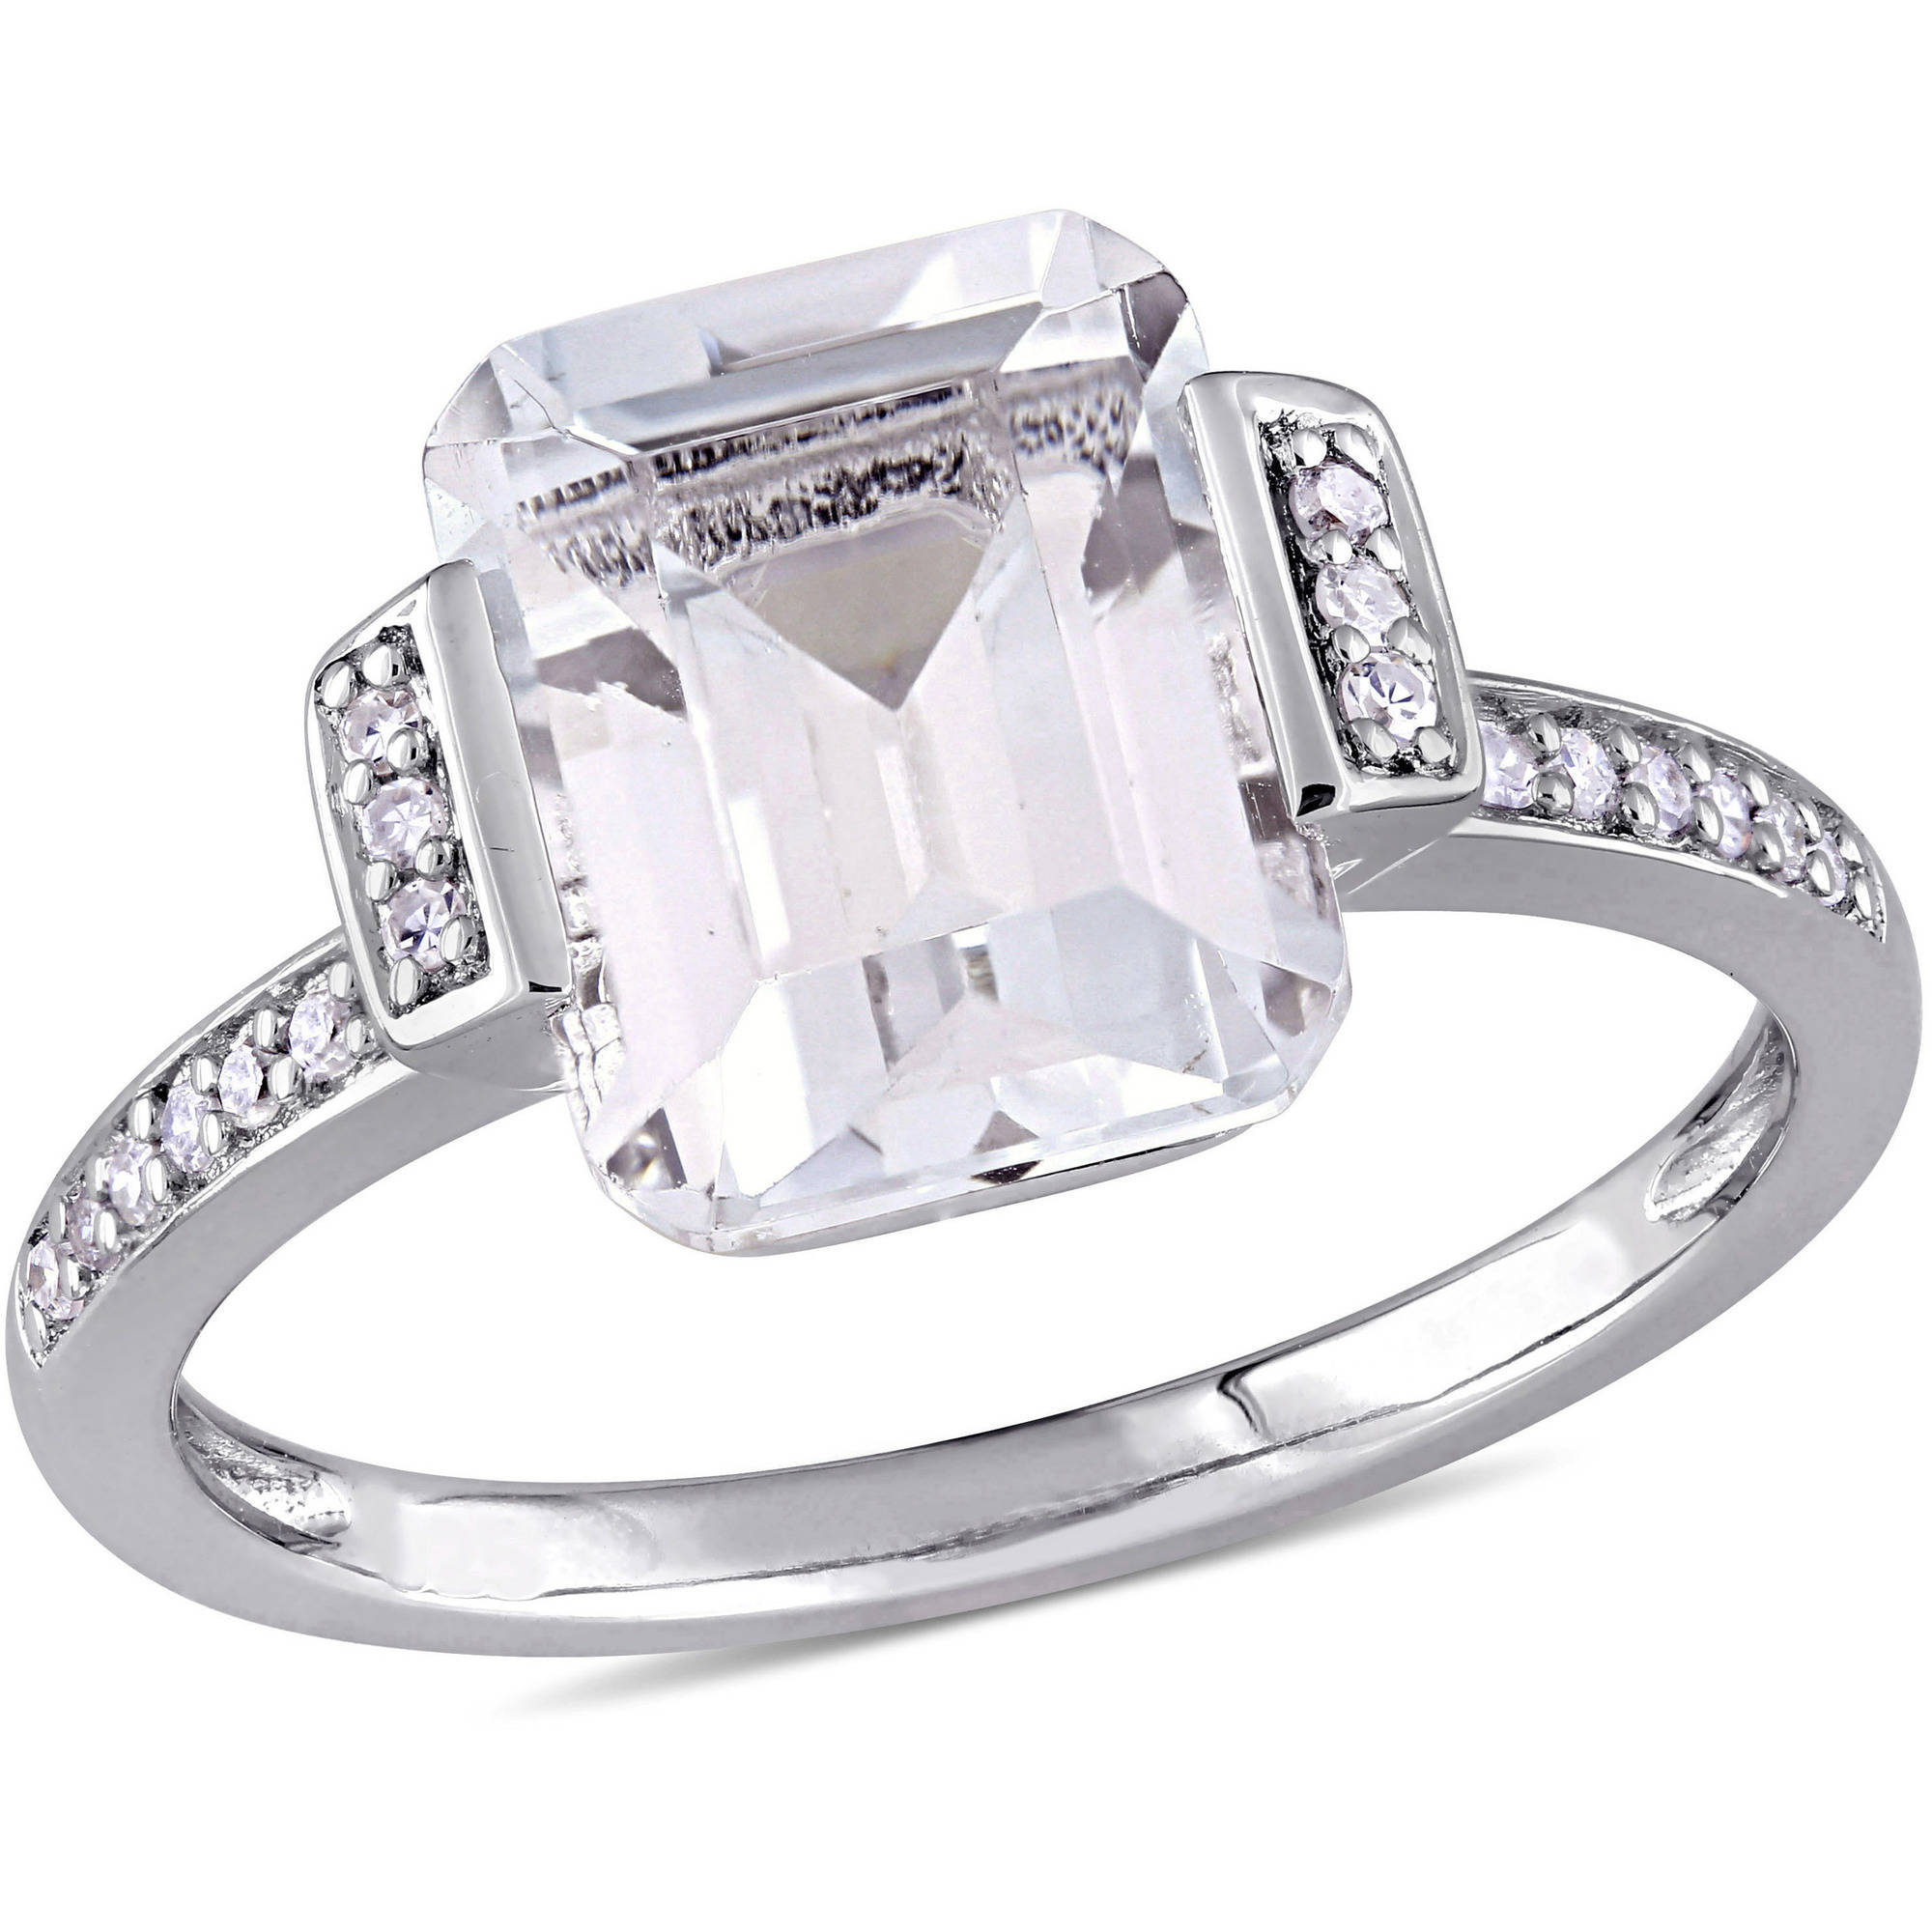 Miabella 4 Carat T.G.W. Emerald-Cut White Topaz and Diamond-Accent Sterling Silver Vintage Halo Engagement Ring by Miabella